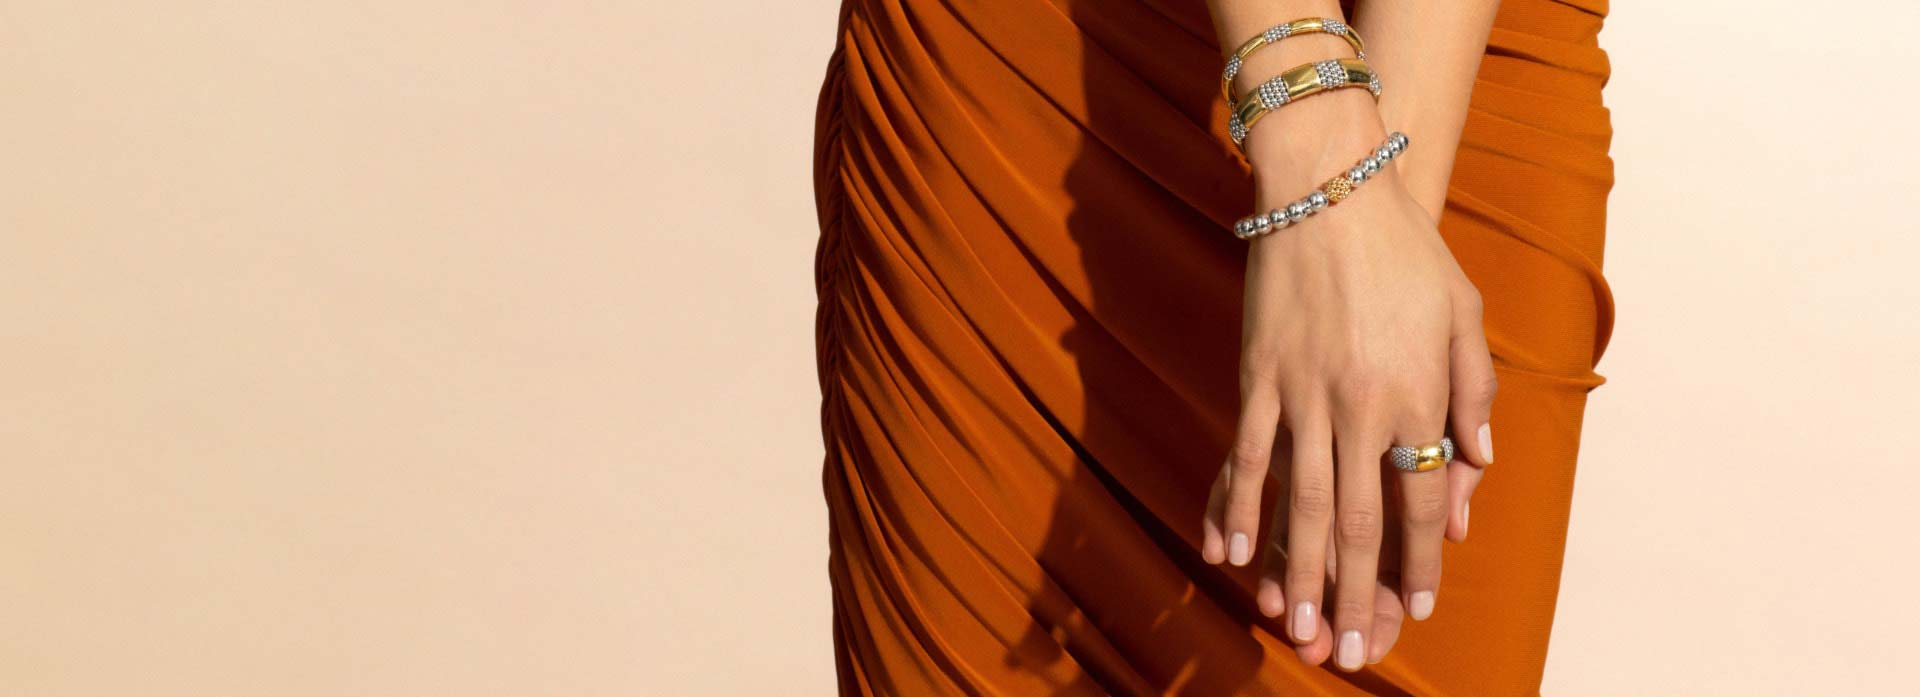 bracelets and rings with 18K gold and sterling silver Caviar beaded accents